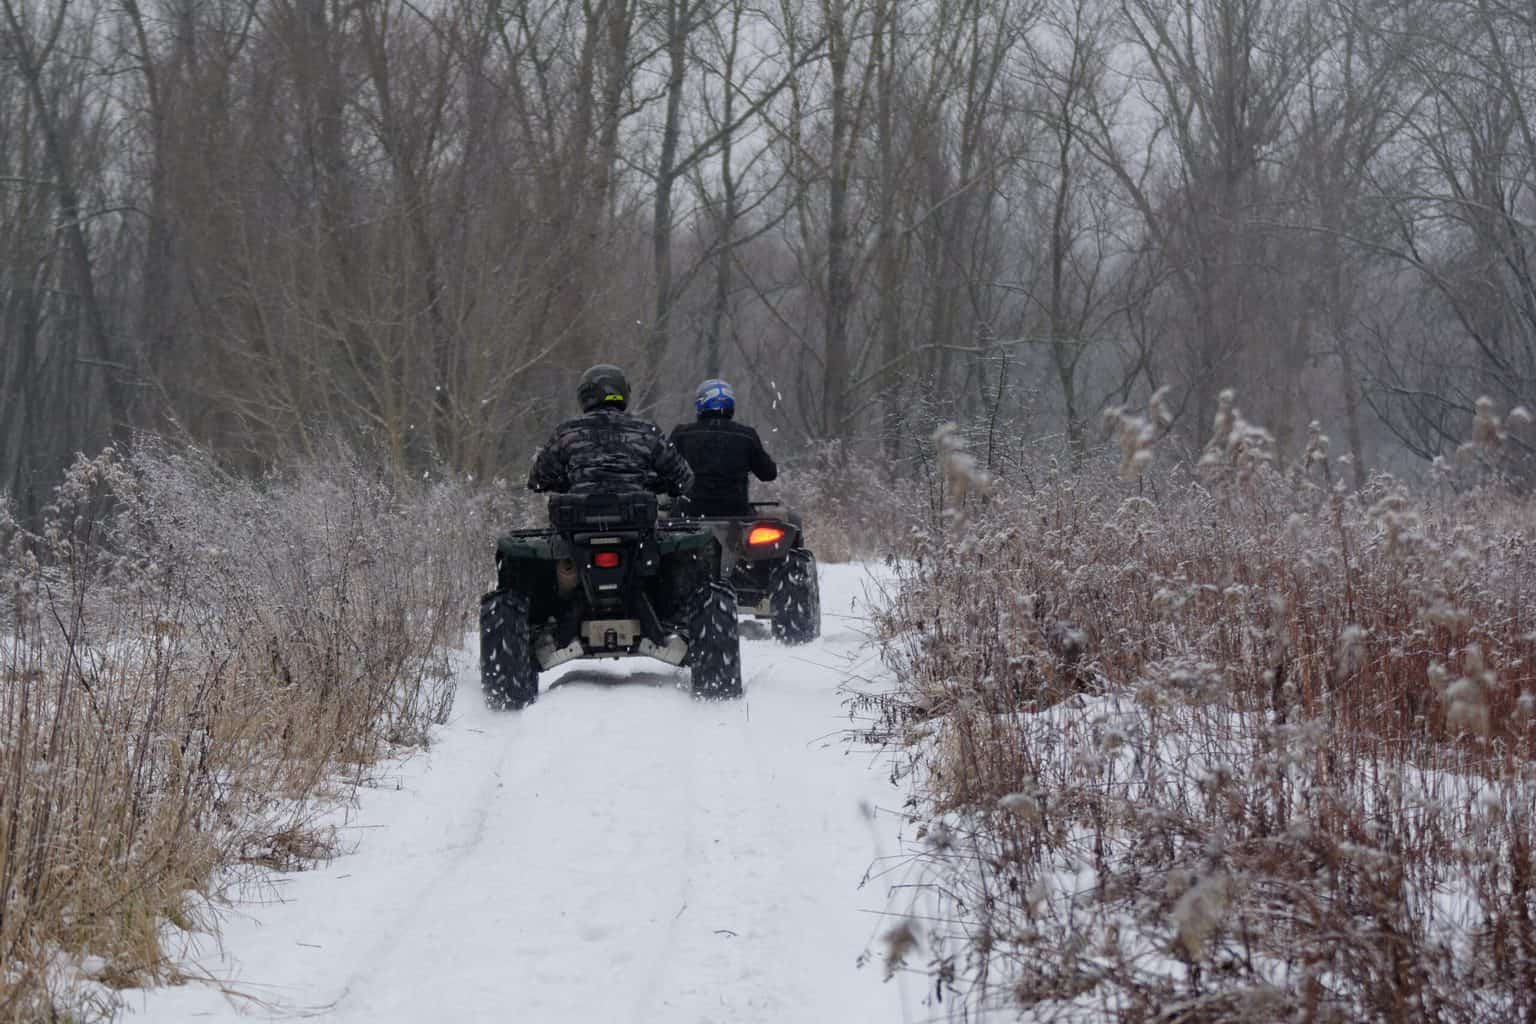 Two persons riding two ATVs in snow